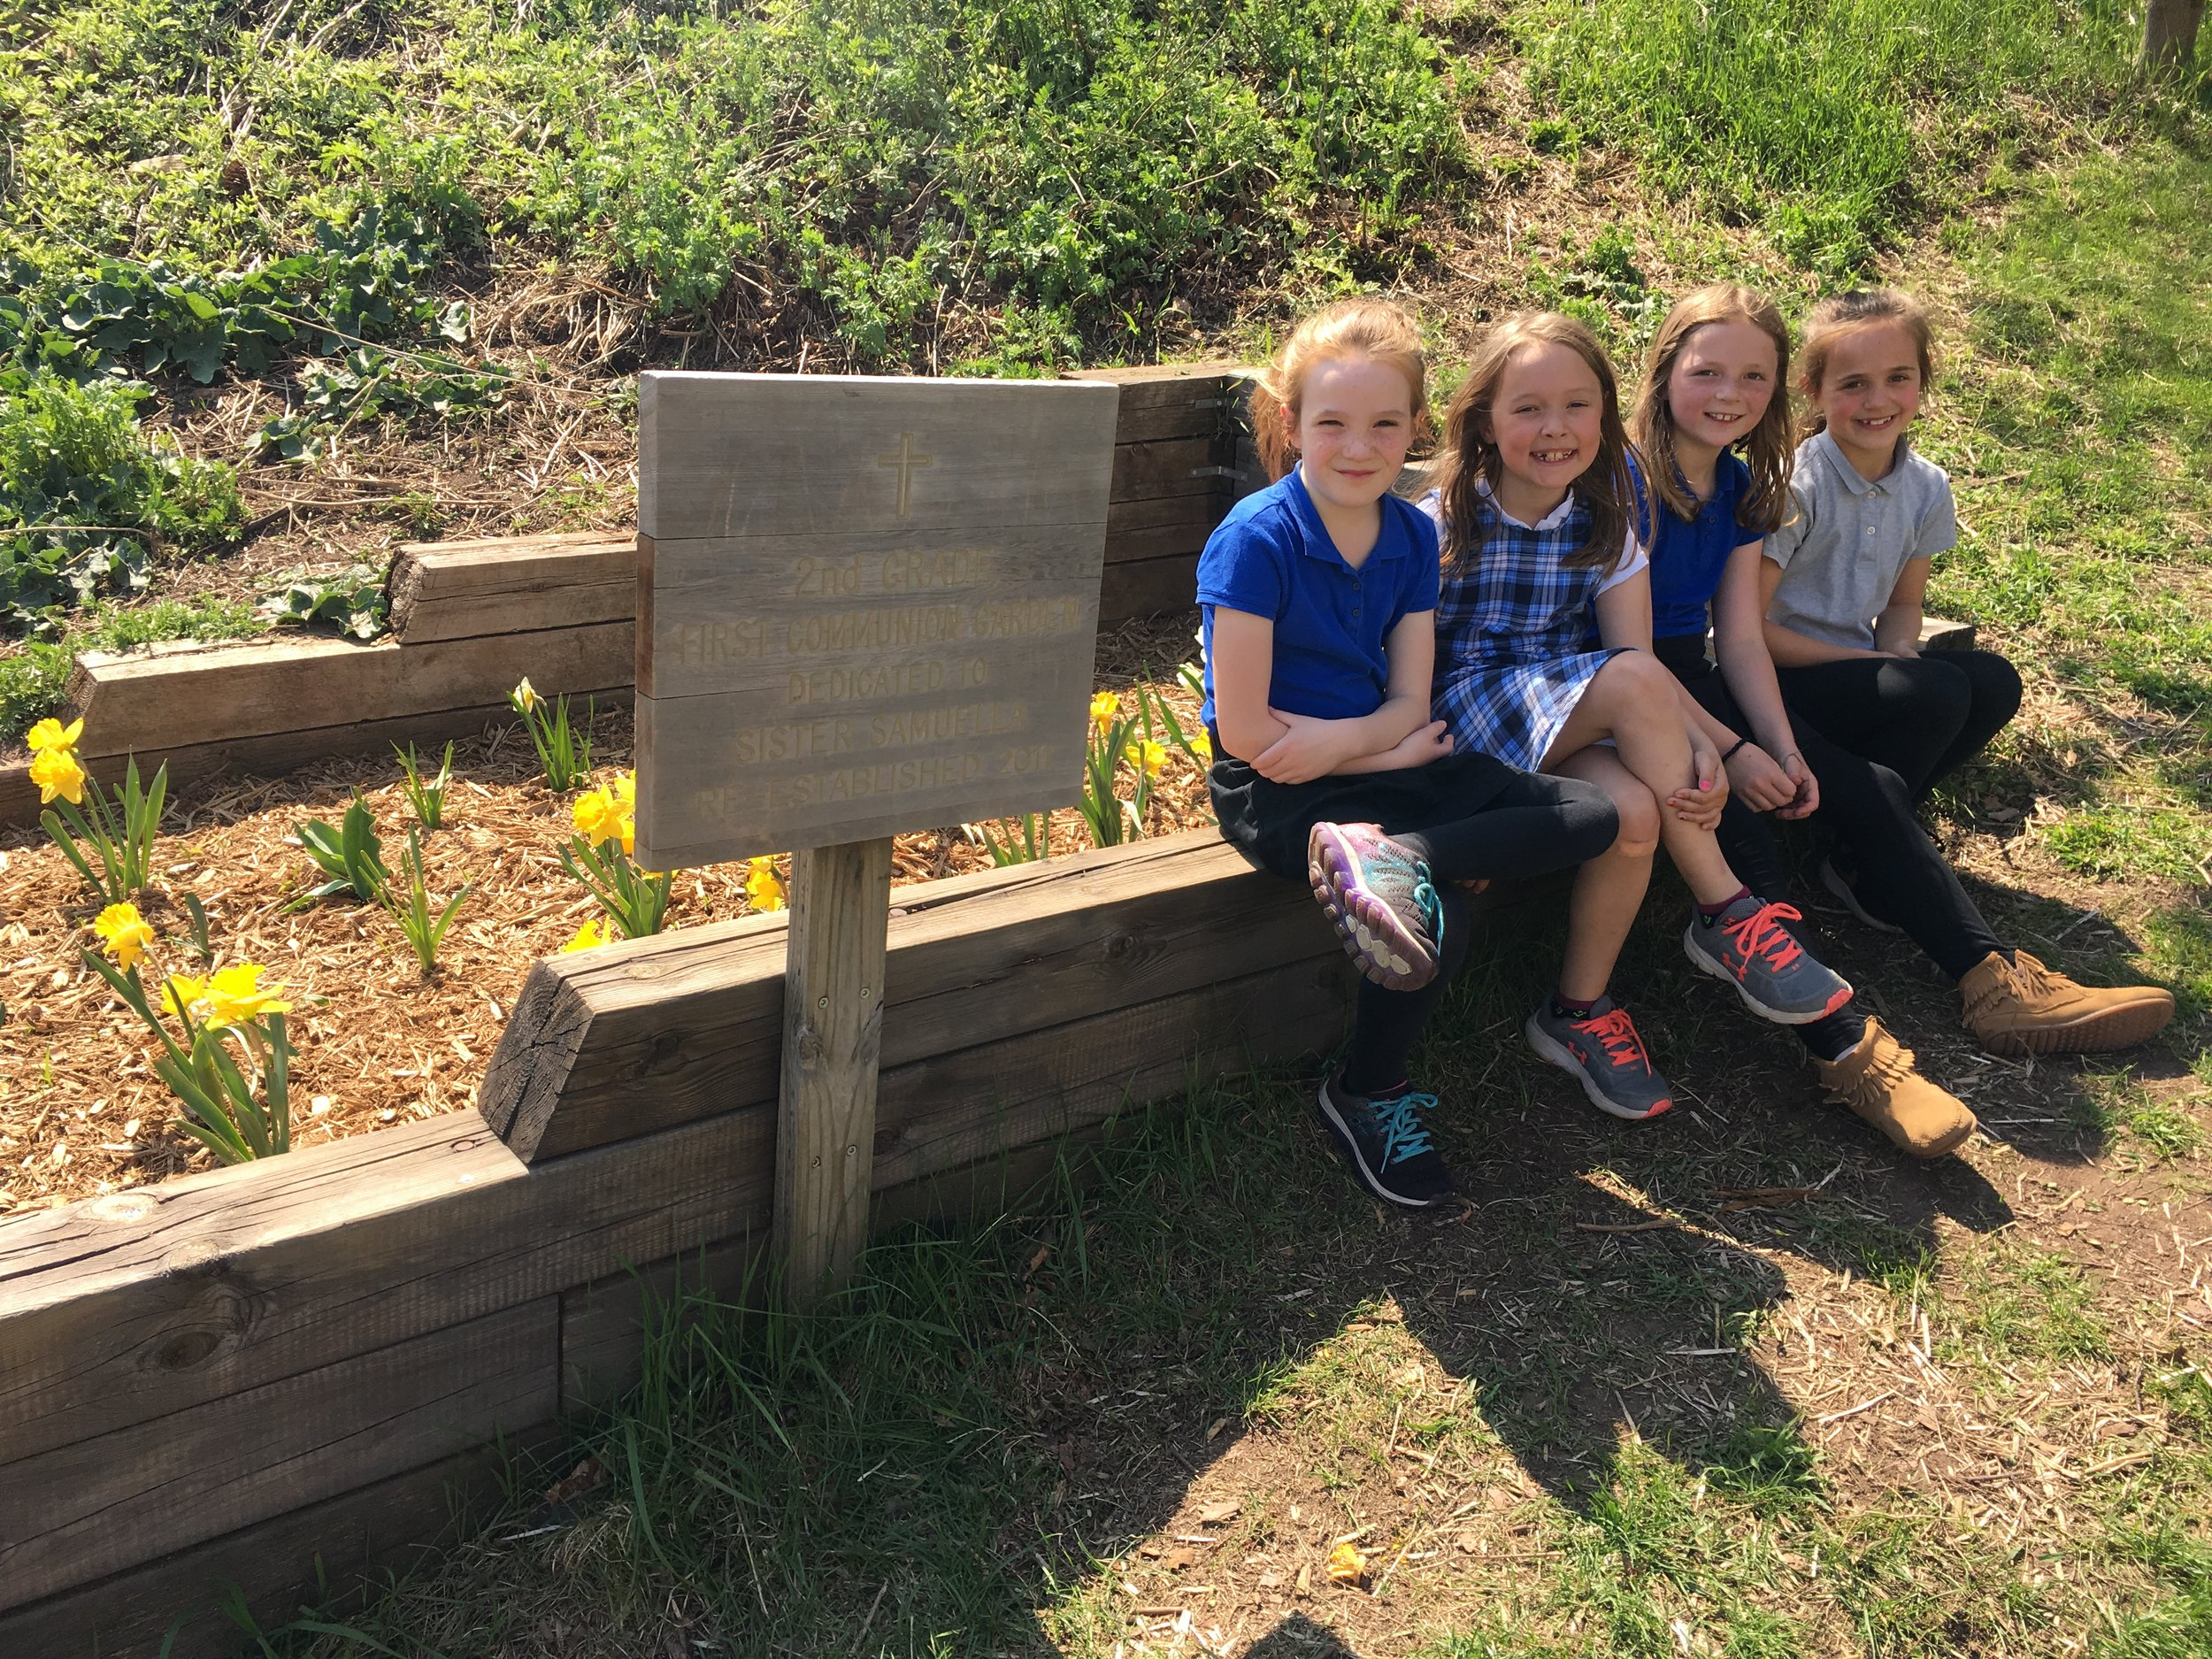 Second grade students pose in front of the First Communion Garden.